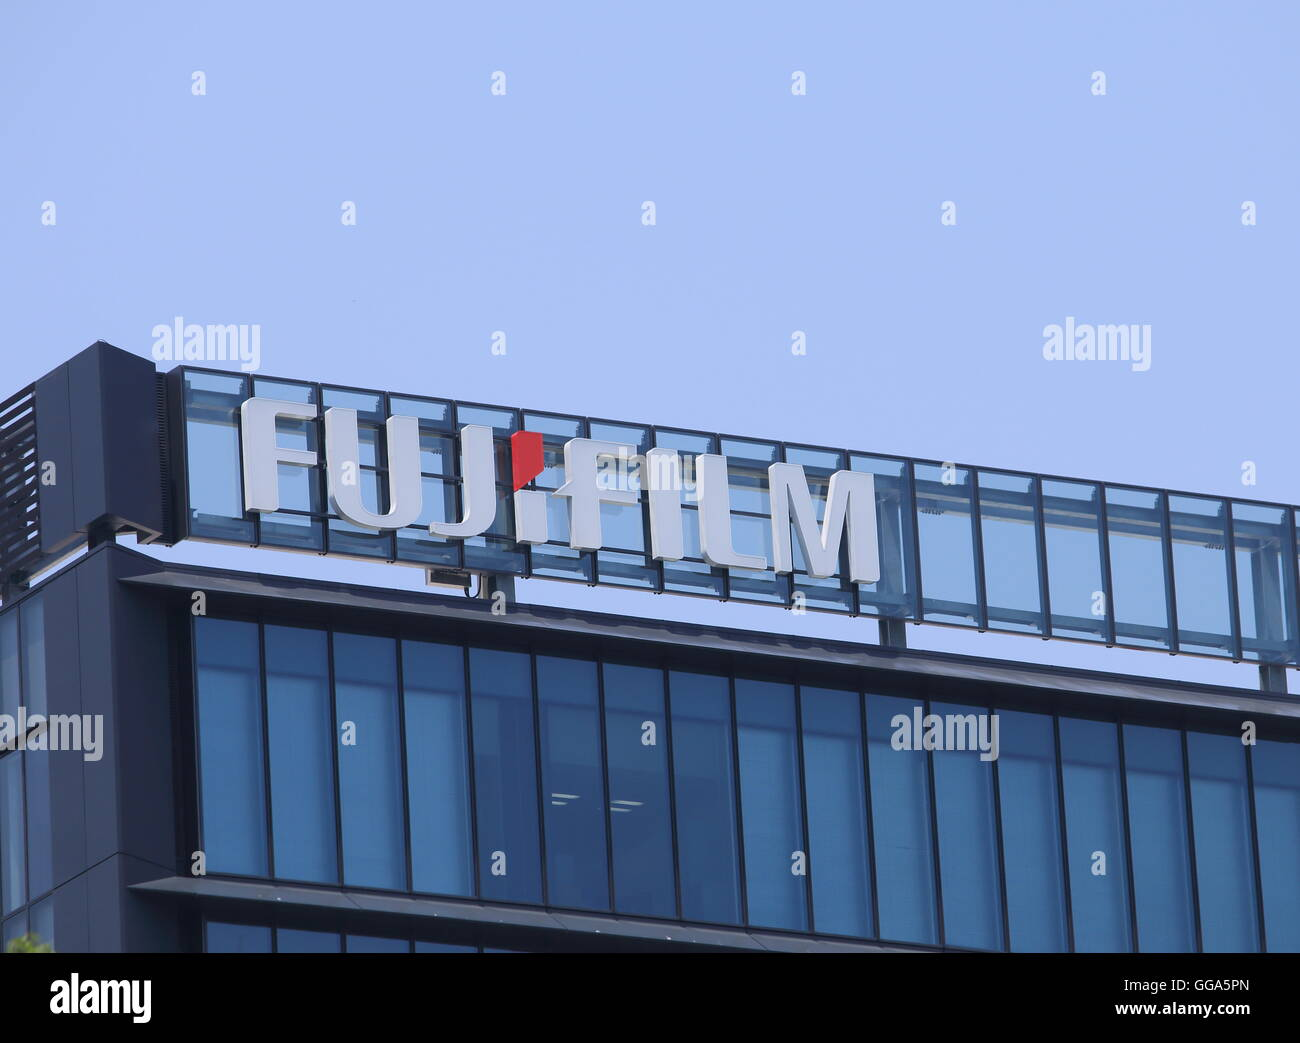 Fujifilm Company Logo A Japanese Multinational Photography And Imaging Headquartered In Tokyo